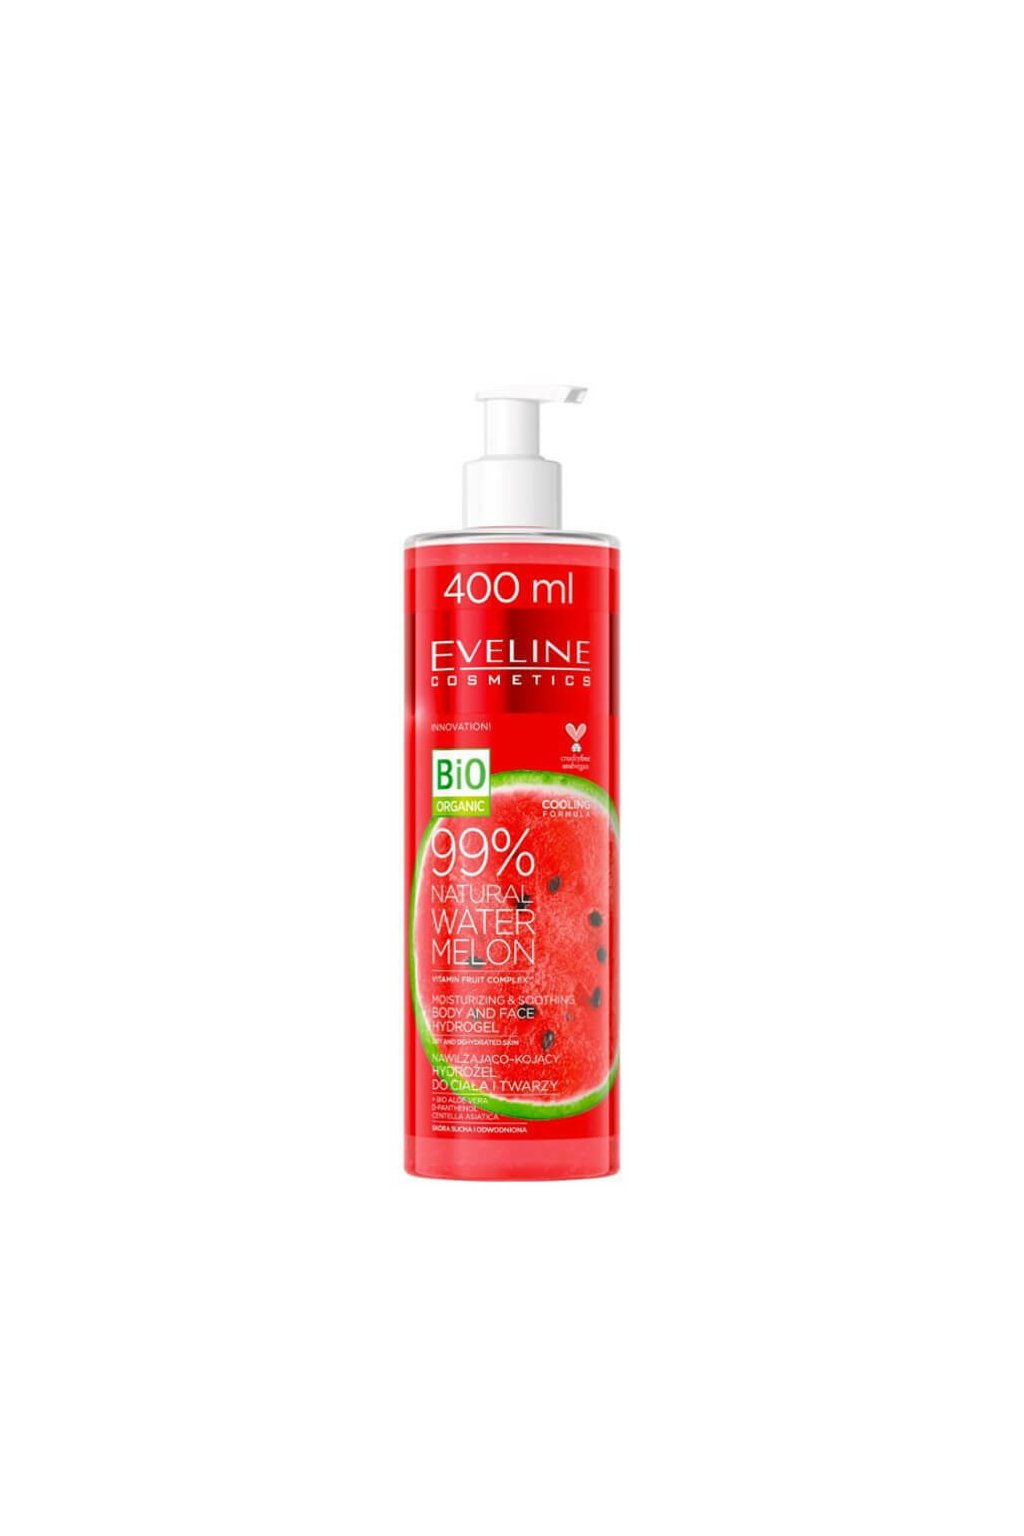 Eveline cosmetics Natural Watermelon Face and Body Hydro gel 400ml